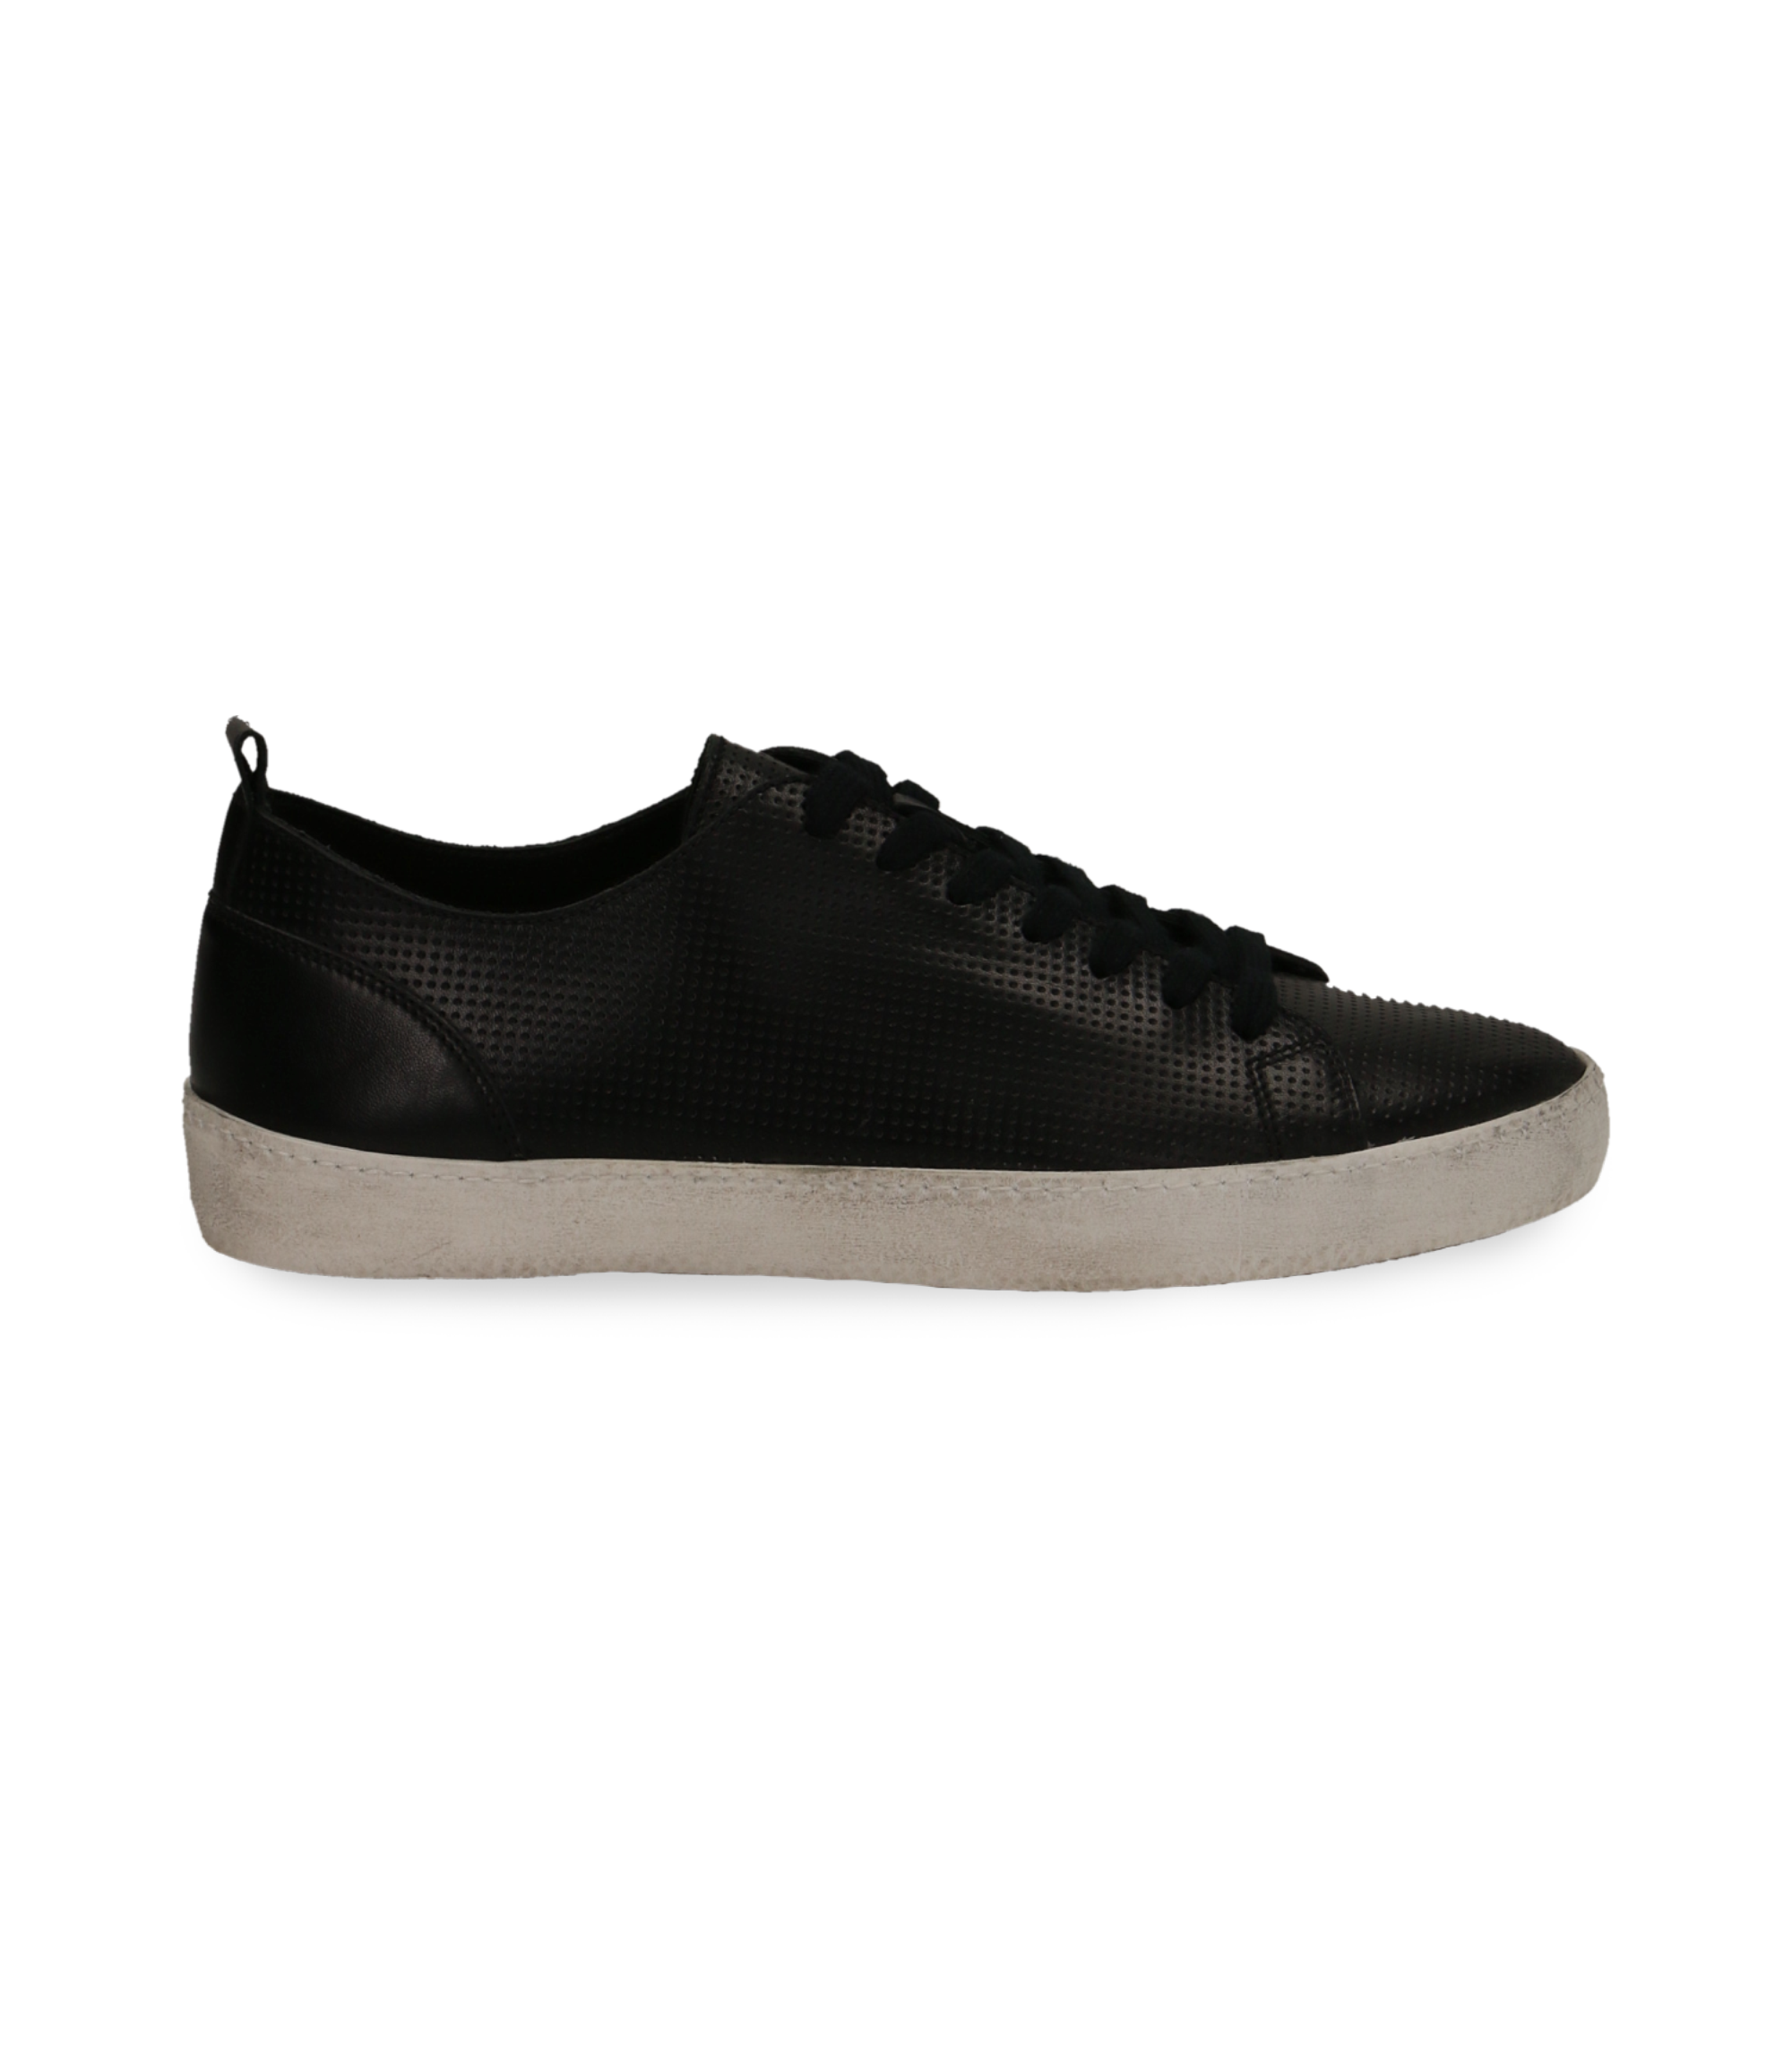 Sneakers nere in pelle con suola bianca